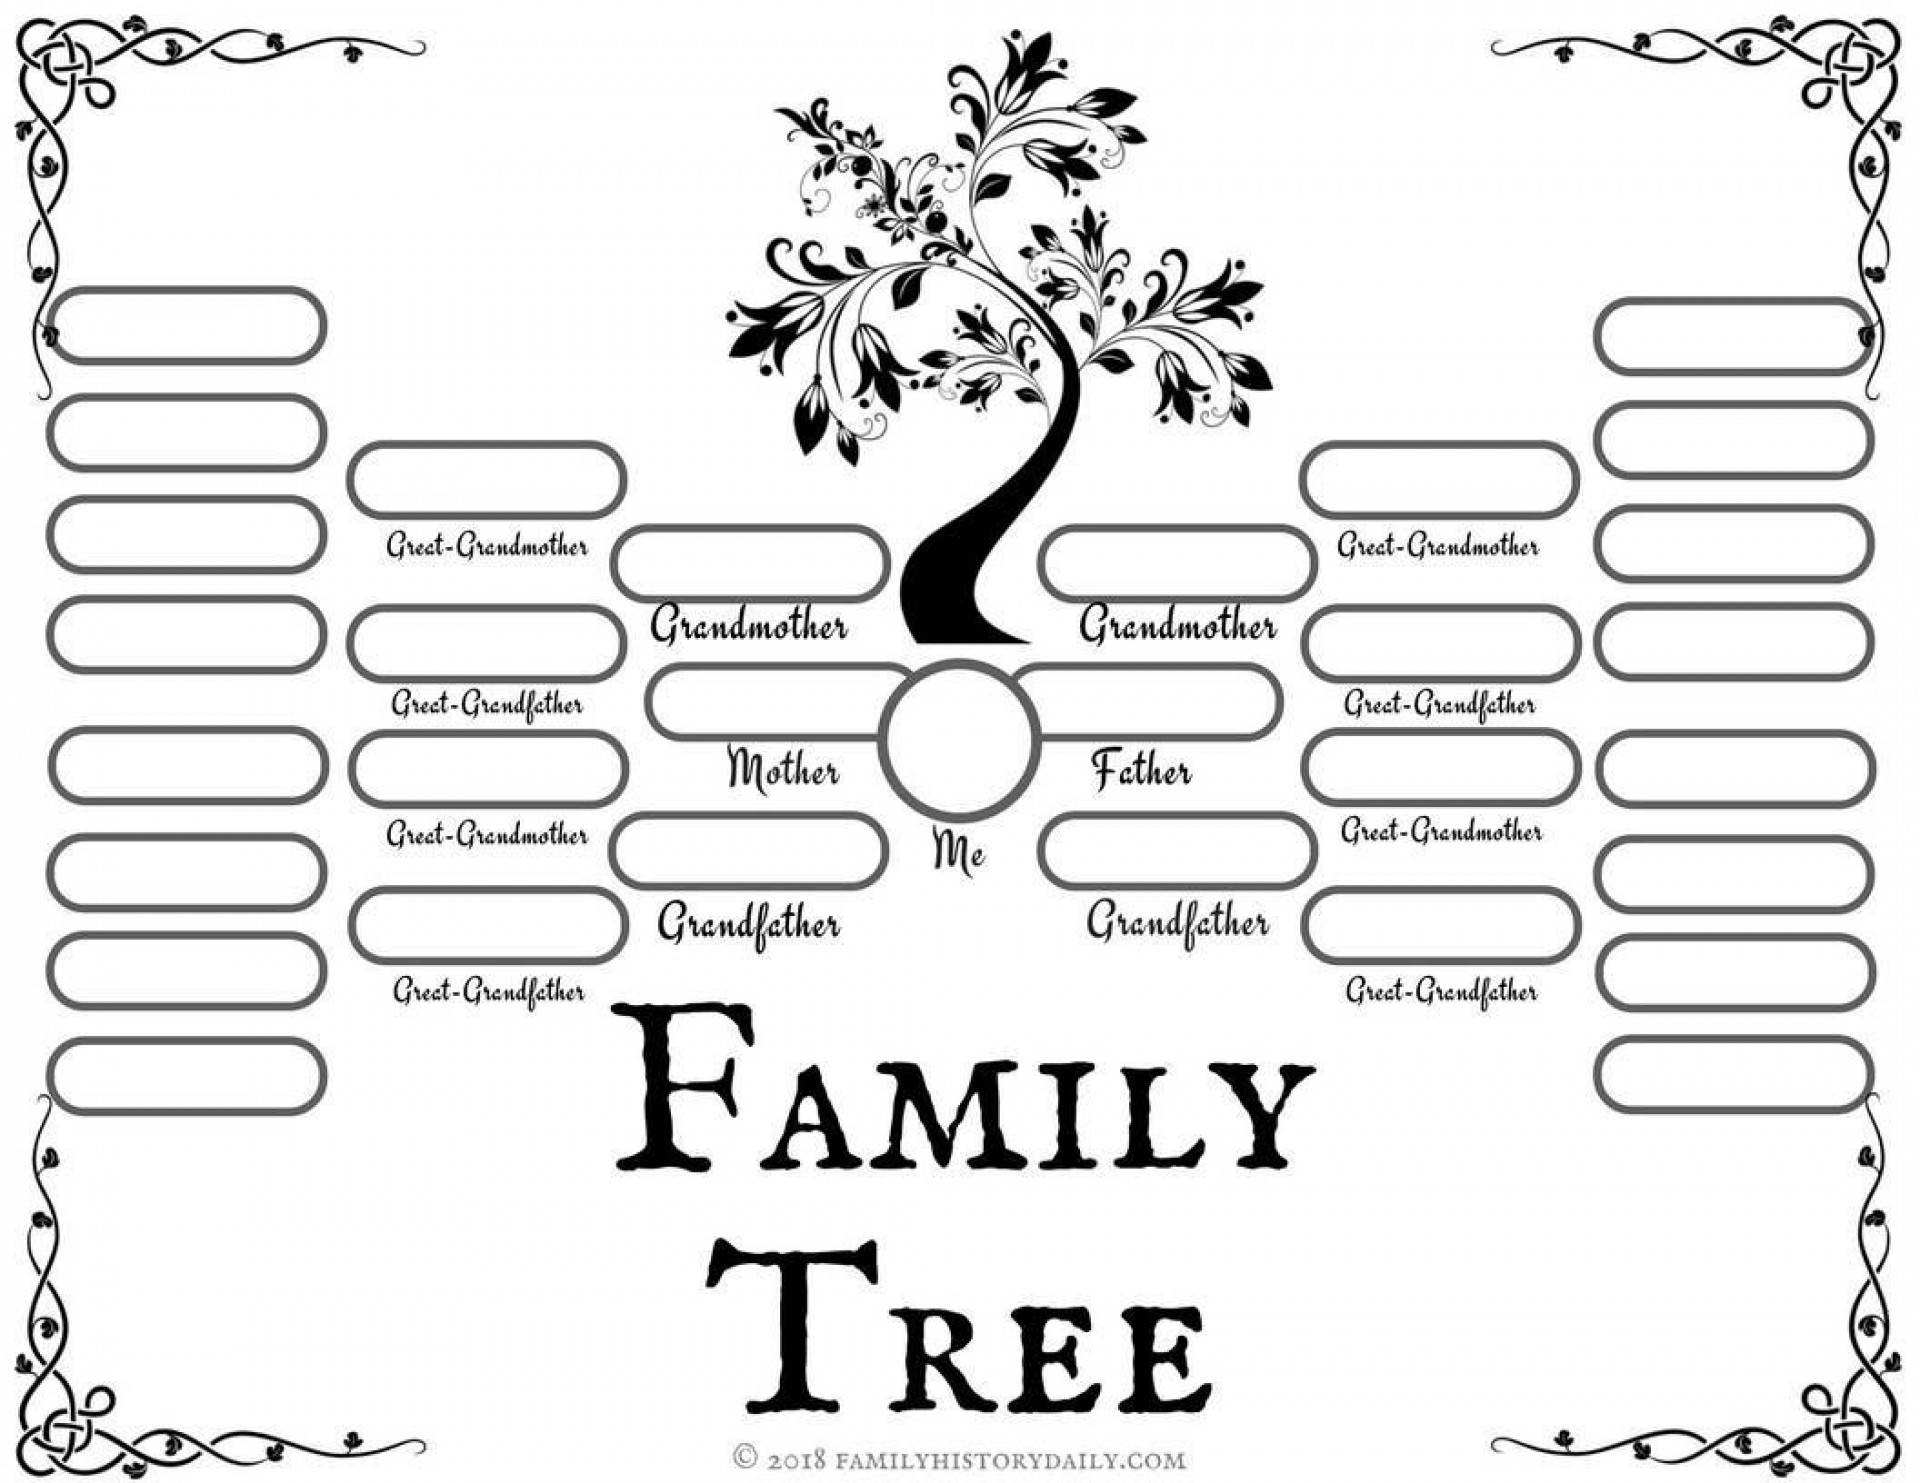 002 Wondrou Free Family Tree Template Word High Definition  Microsoft Document1920